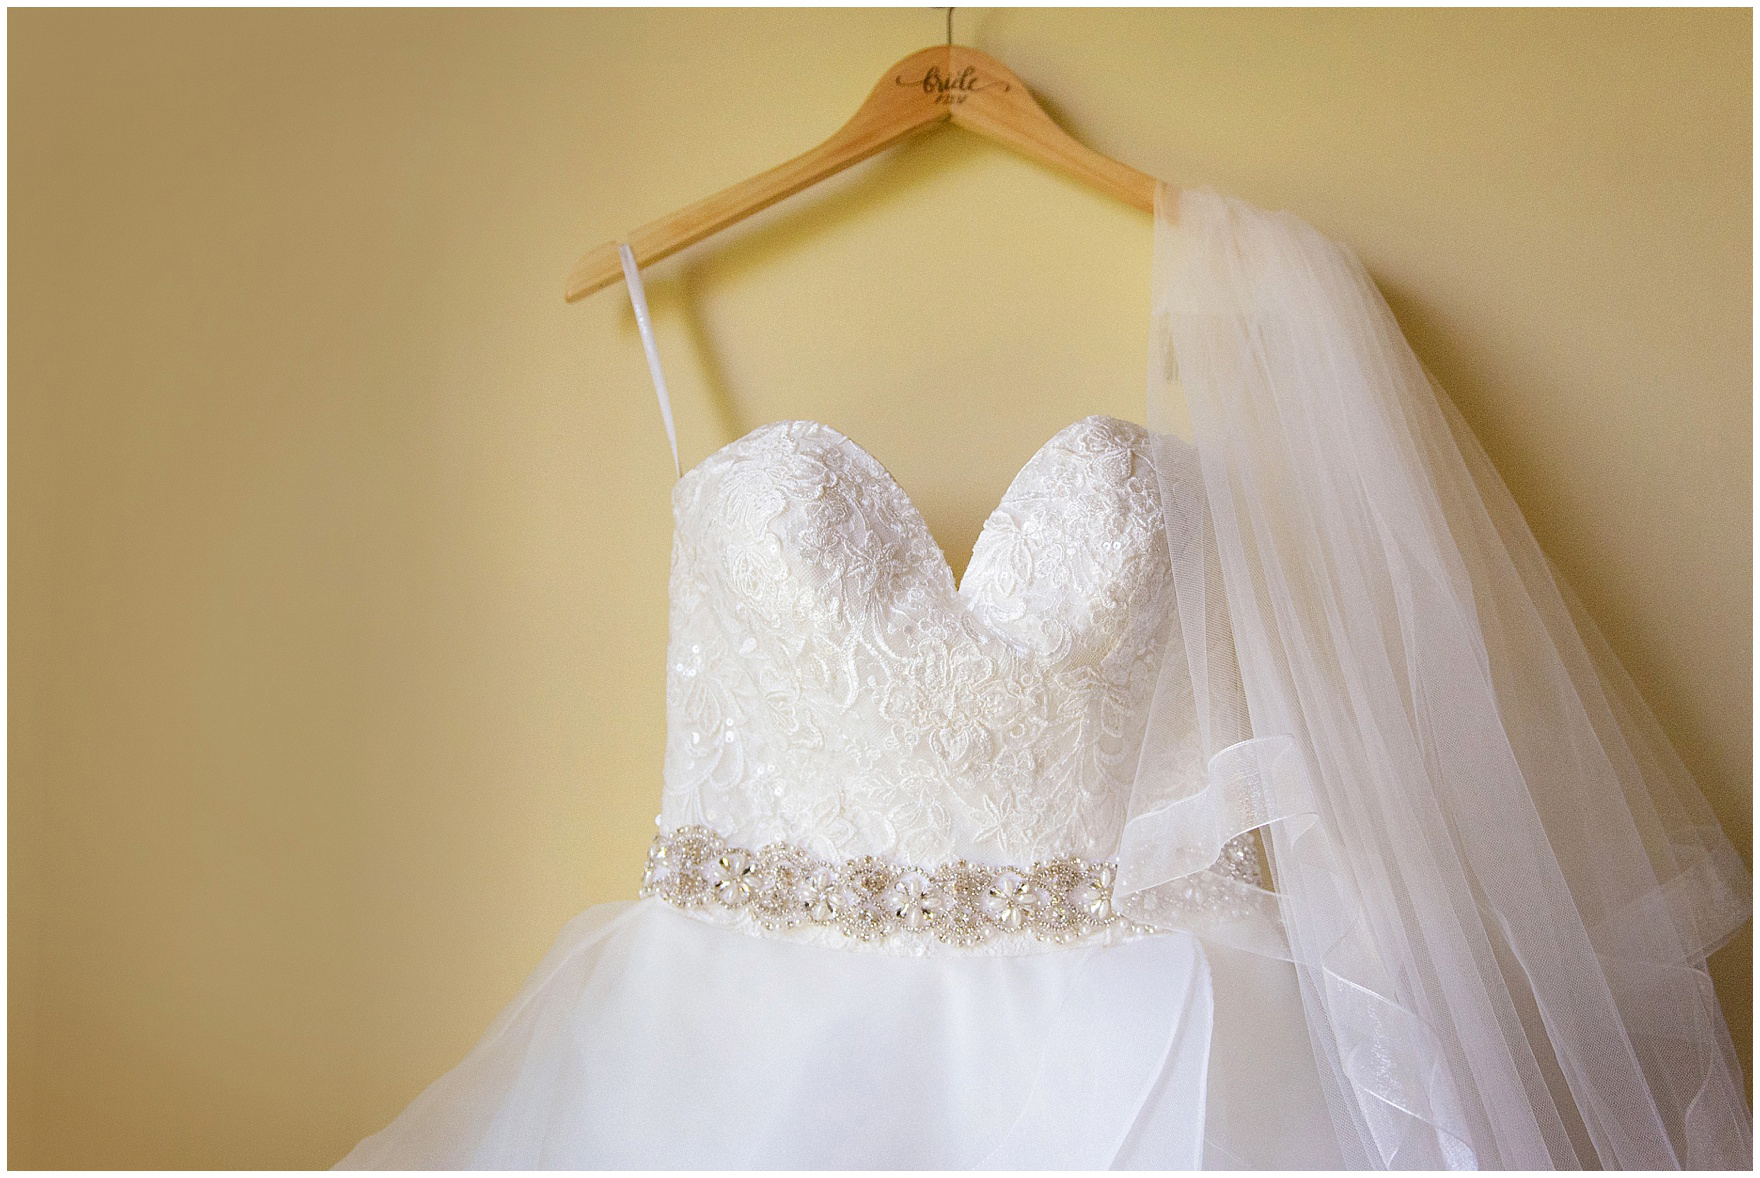 The bridal gown hangs at the Morris Inn before a University of Notre Dame Wedding.